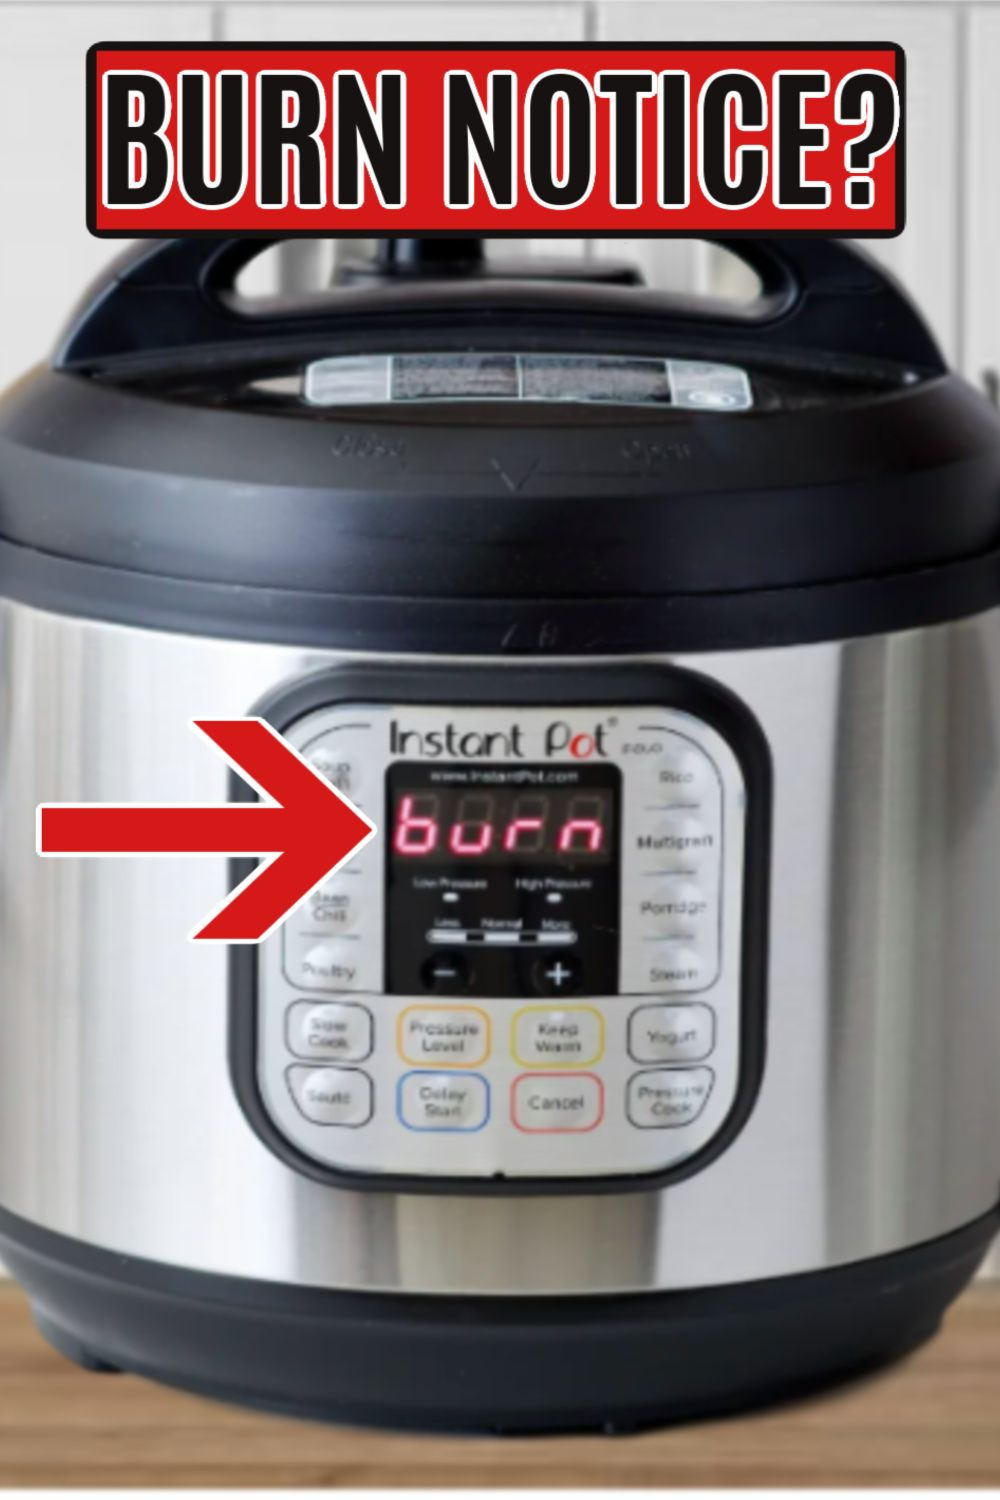 Have you gotten the burn notice on your instant pot we